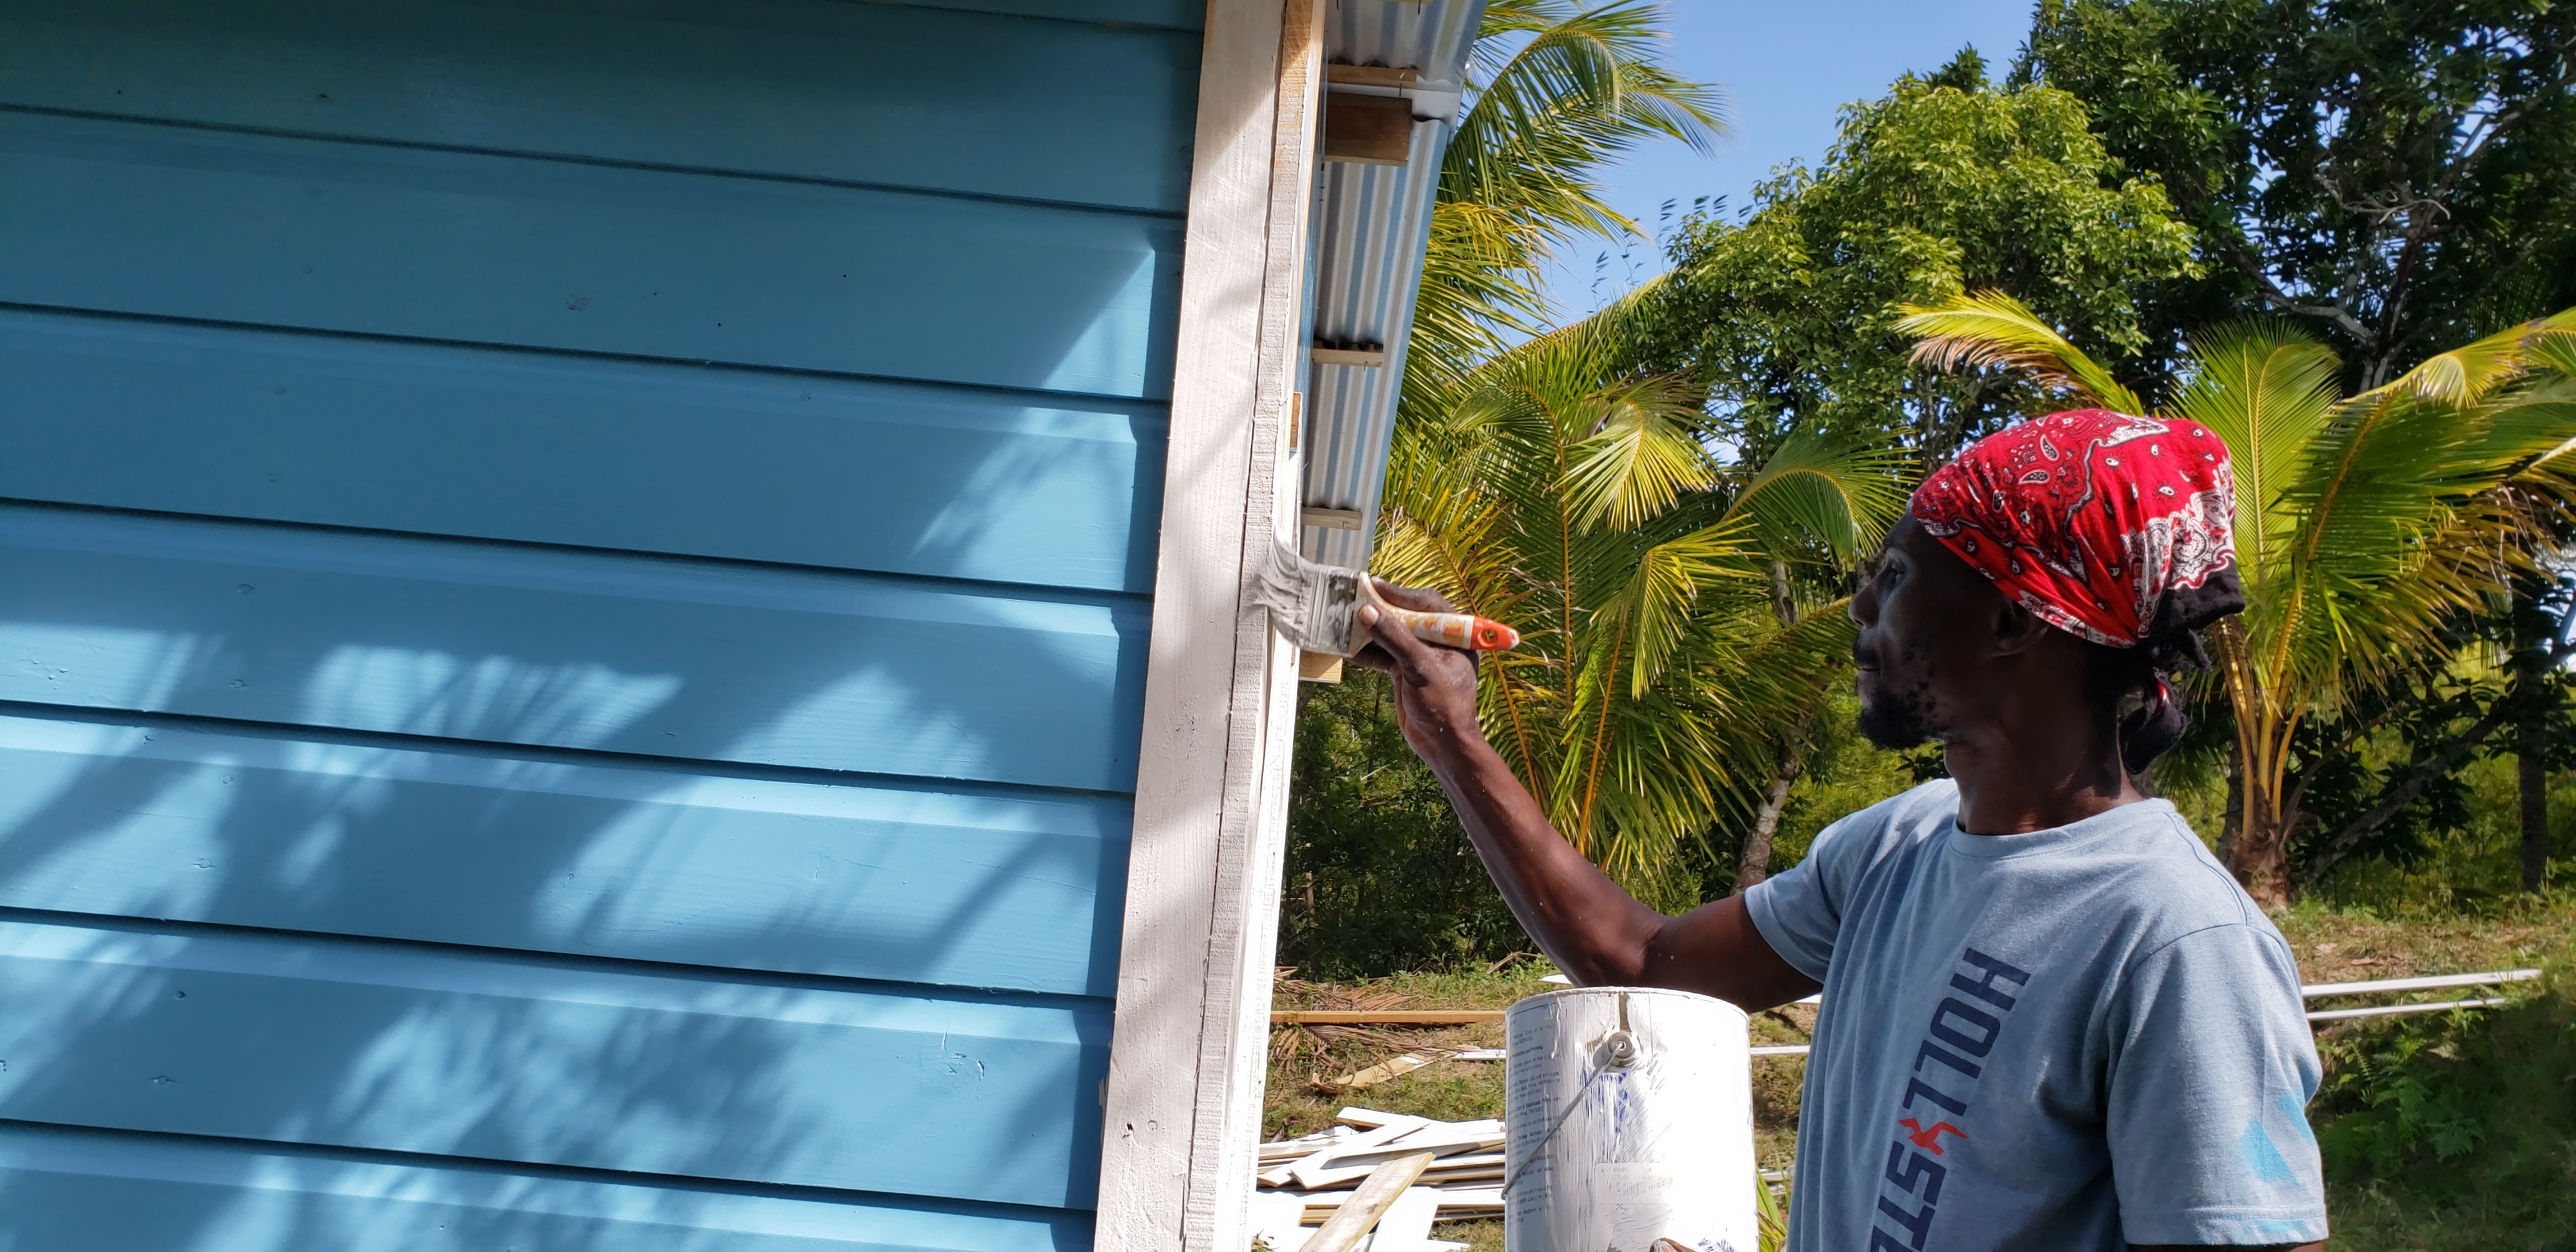 missionaries_in_jamaica_house_painting